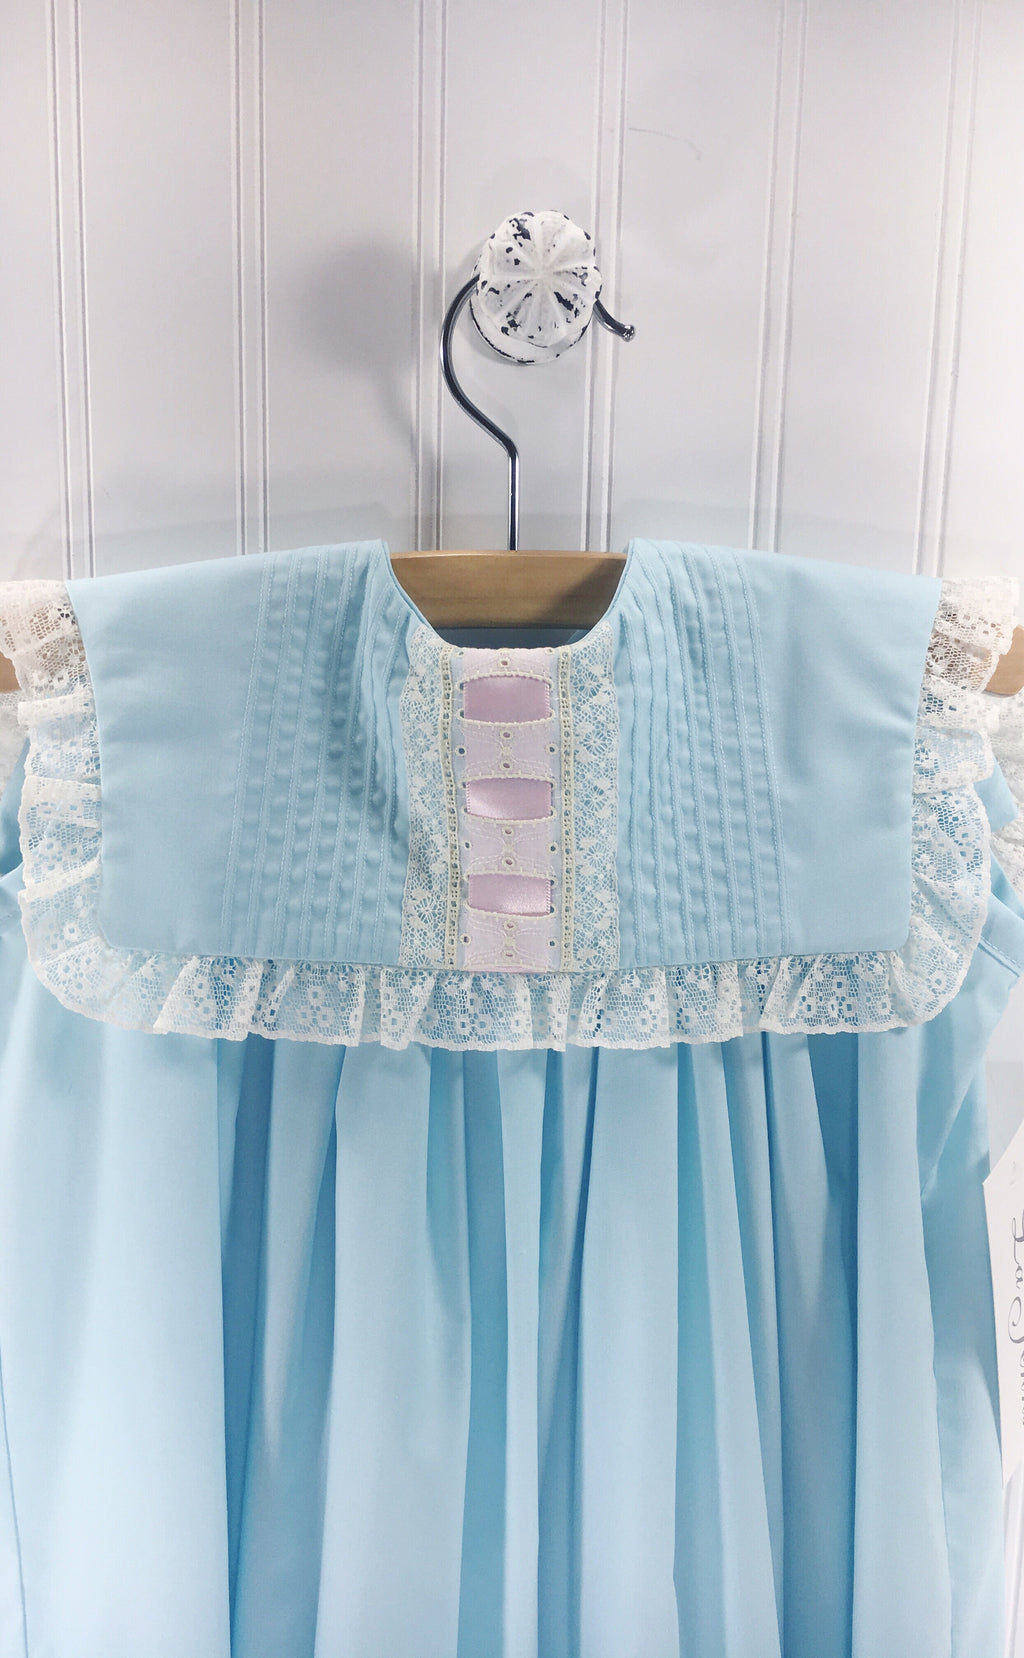 Heirloom Sleeveless Robins Egg Blue Dress with Pink Ribbon